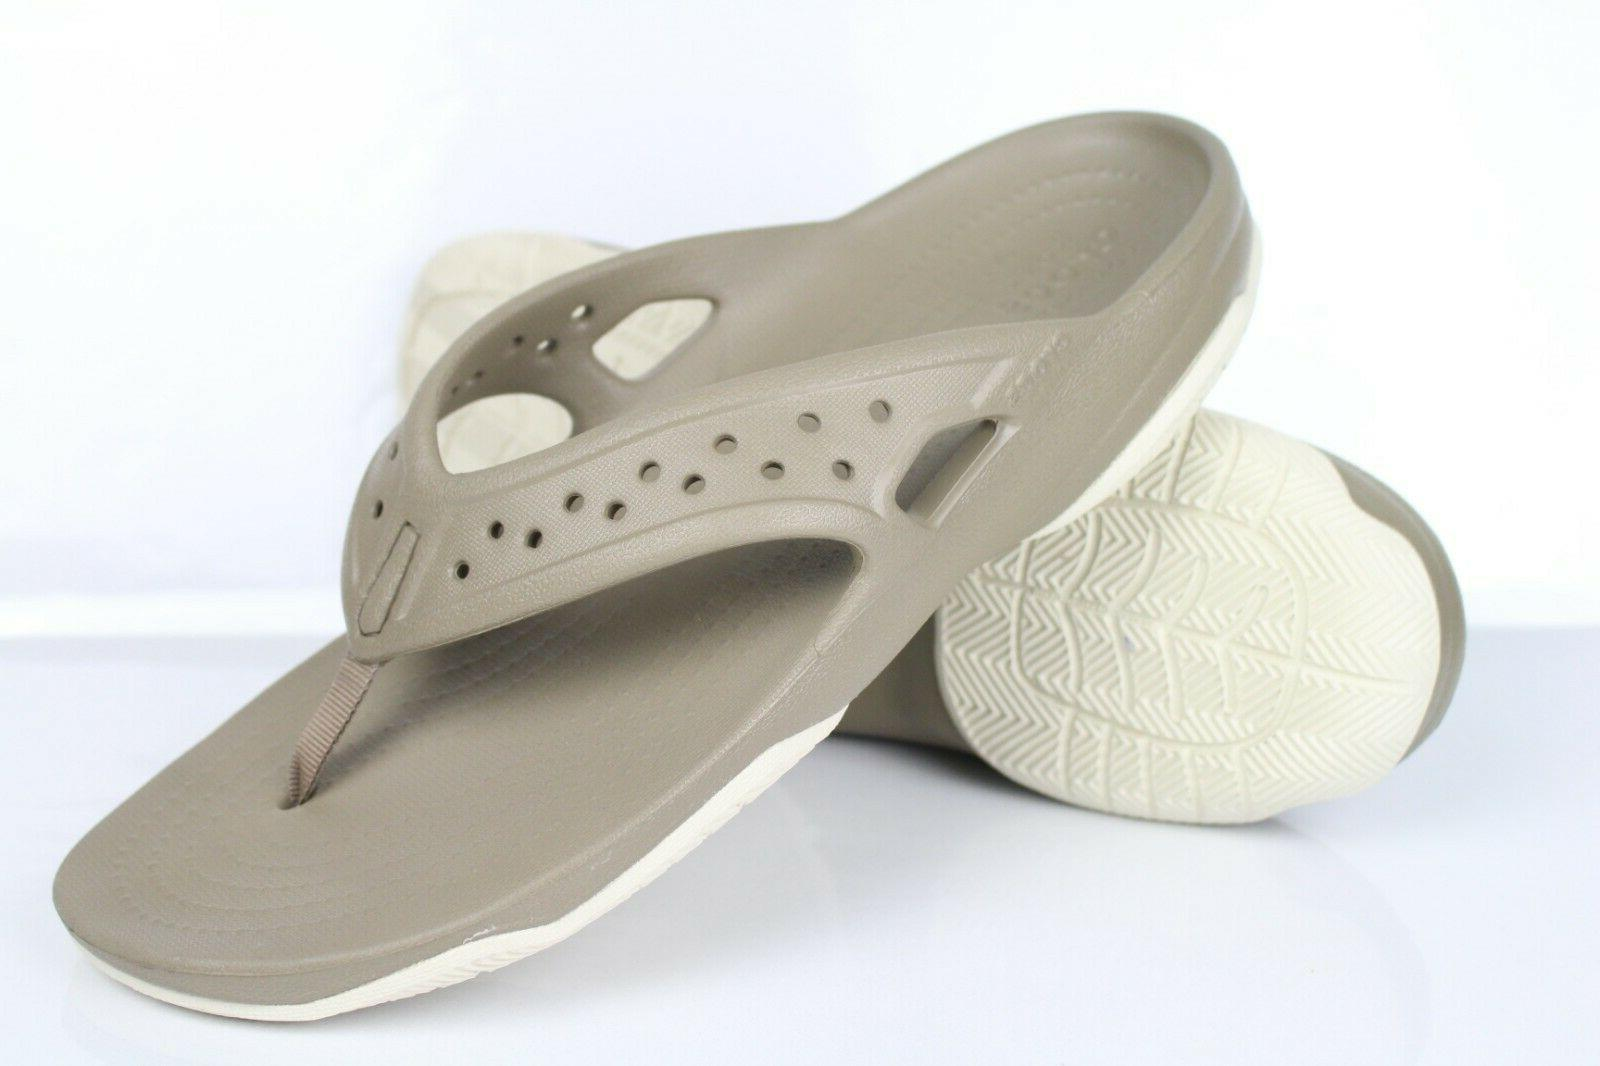 Crocs Men's Swiftwater Deck Flip Flops Size Khaki